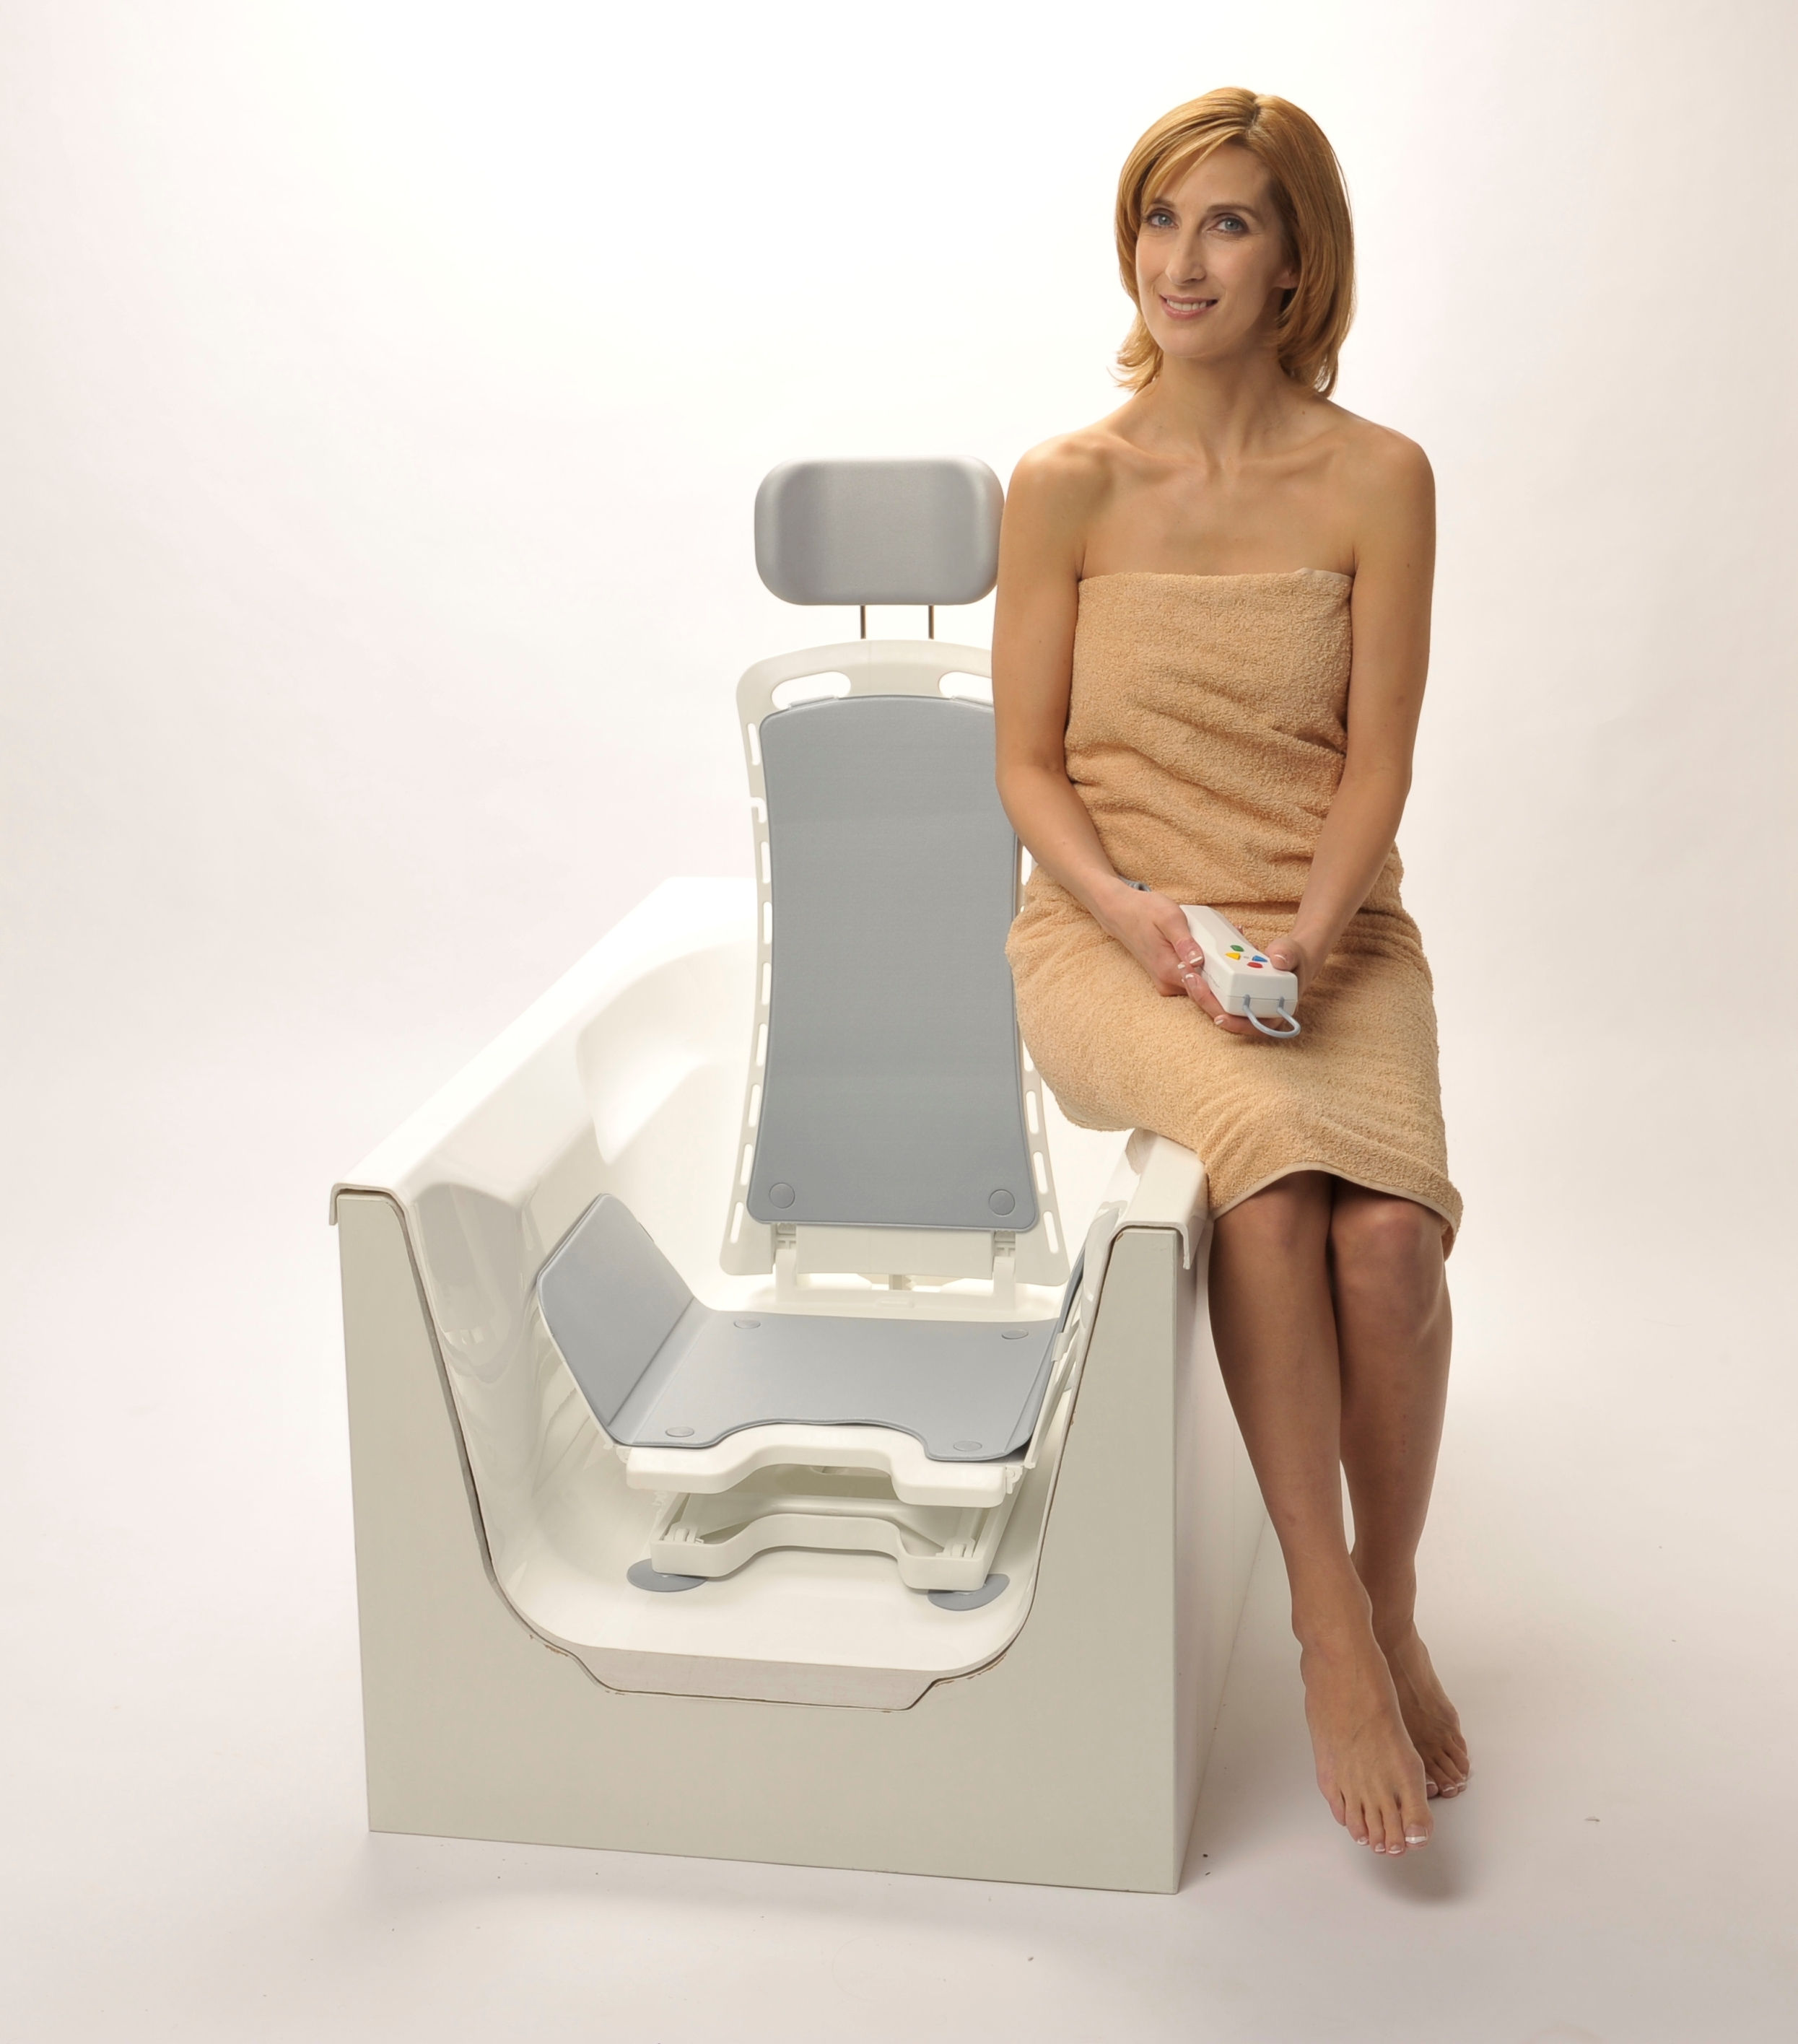 Bathtub Chair Lifts bellavita auto bath tub chair seat lift 477200432 drive medical  sc 1 st  Home Interior Design & Beauteous 25+ Bathtub Chair Lifts Inspiration Of Bellavita Auto Bath ...